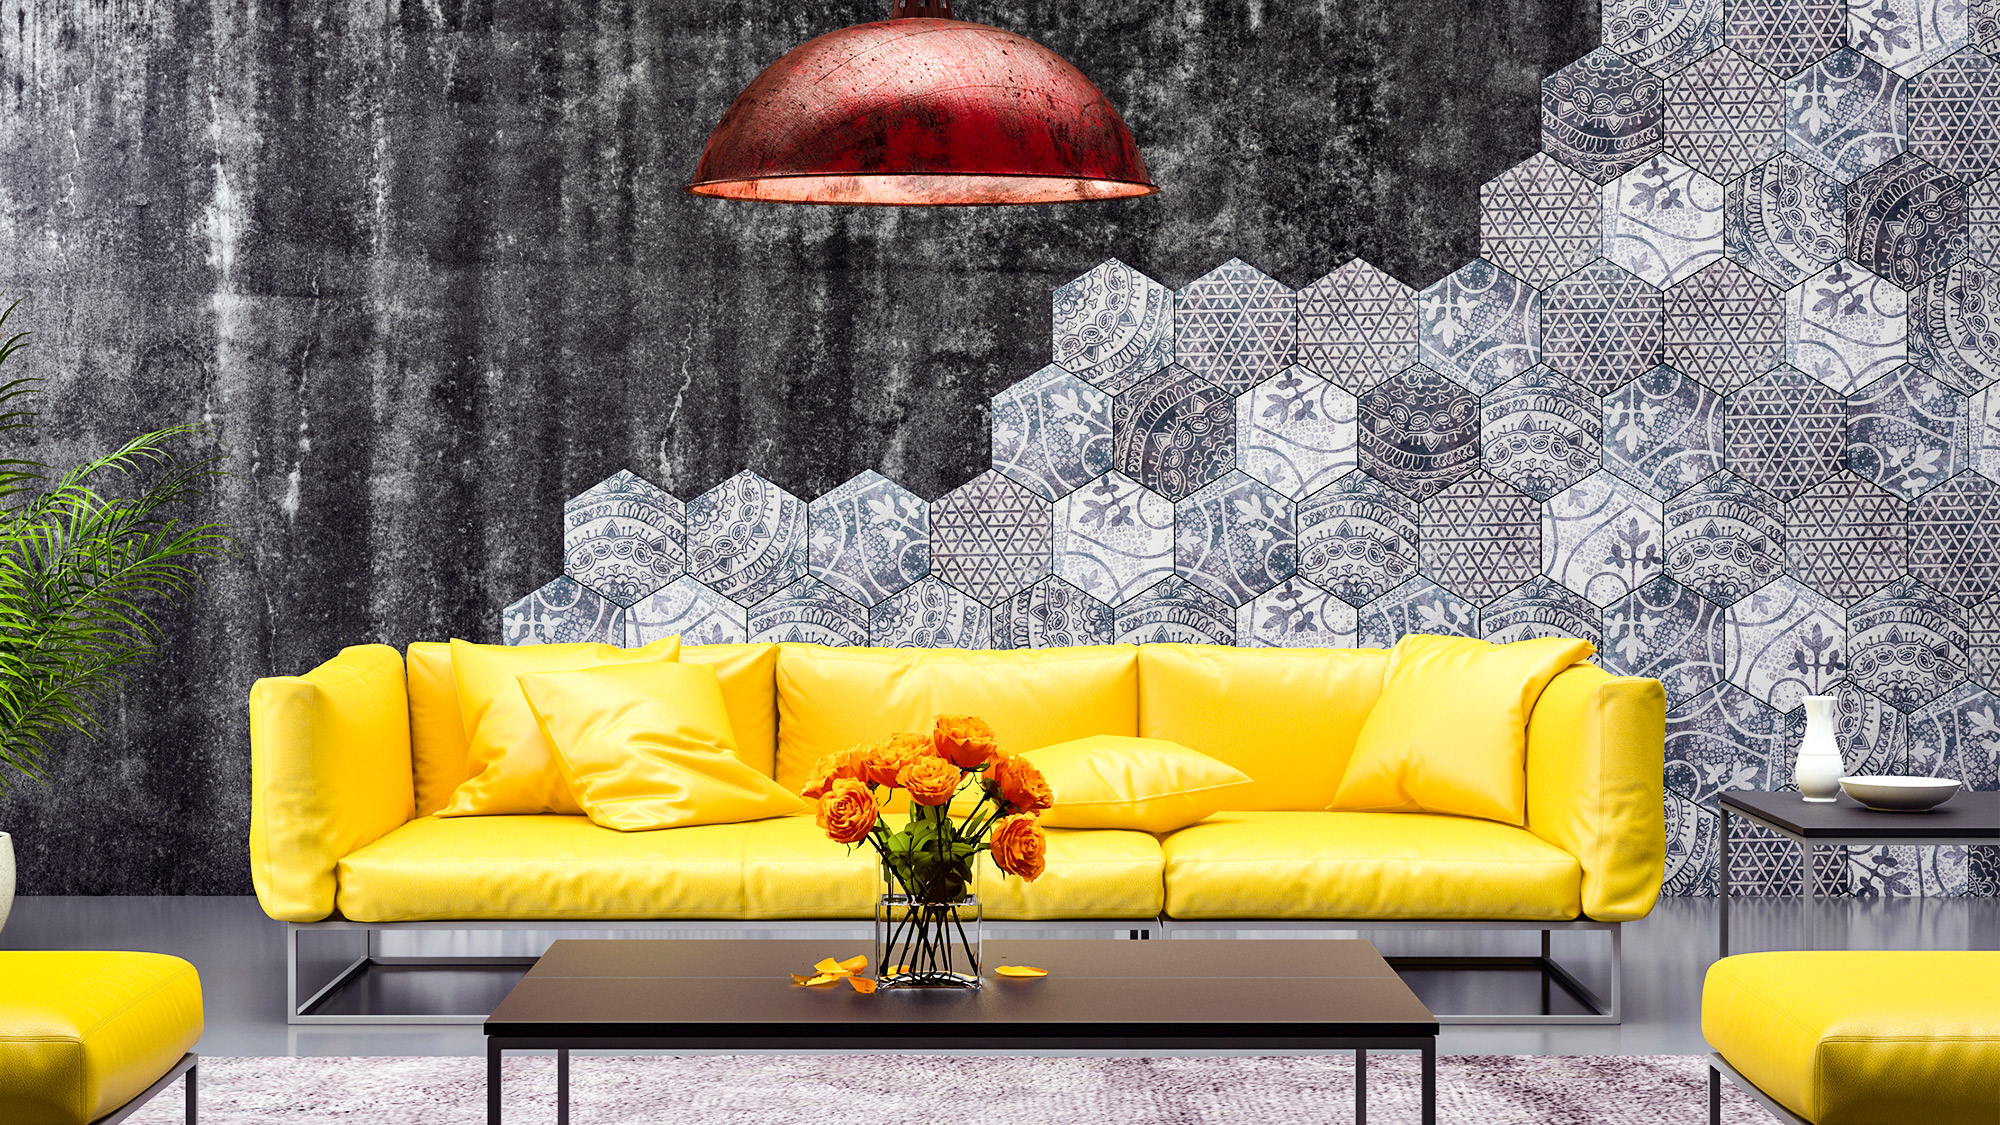 7 Home Decor Trends to Avoid If You Hope to Sell Your Home – Amy ...